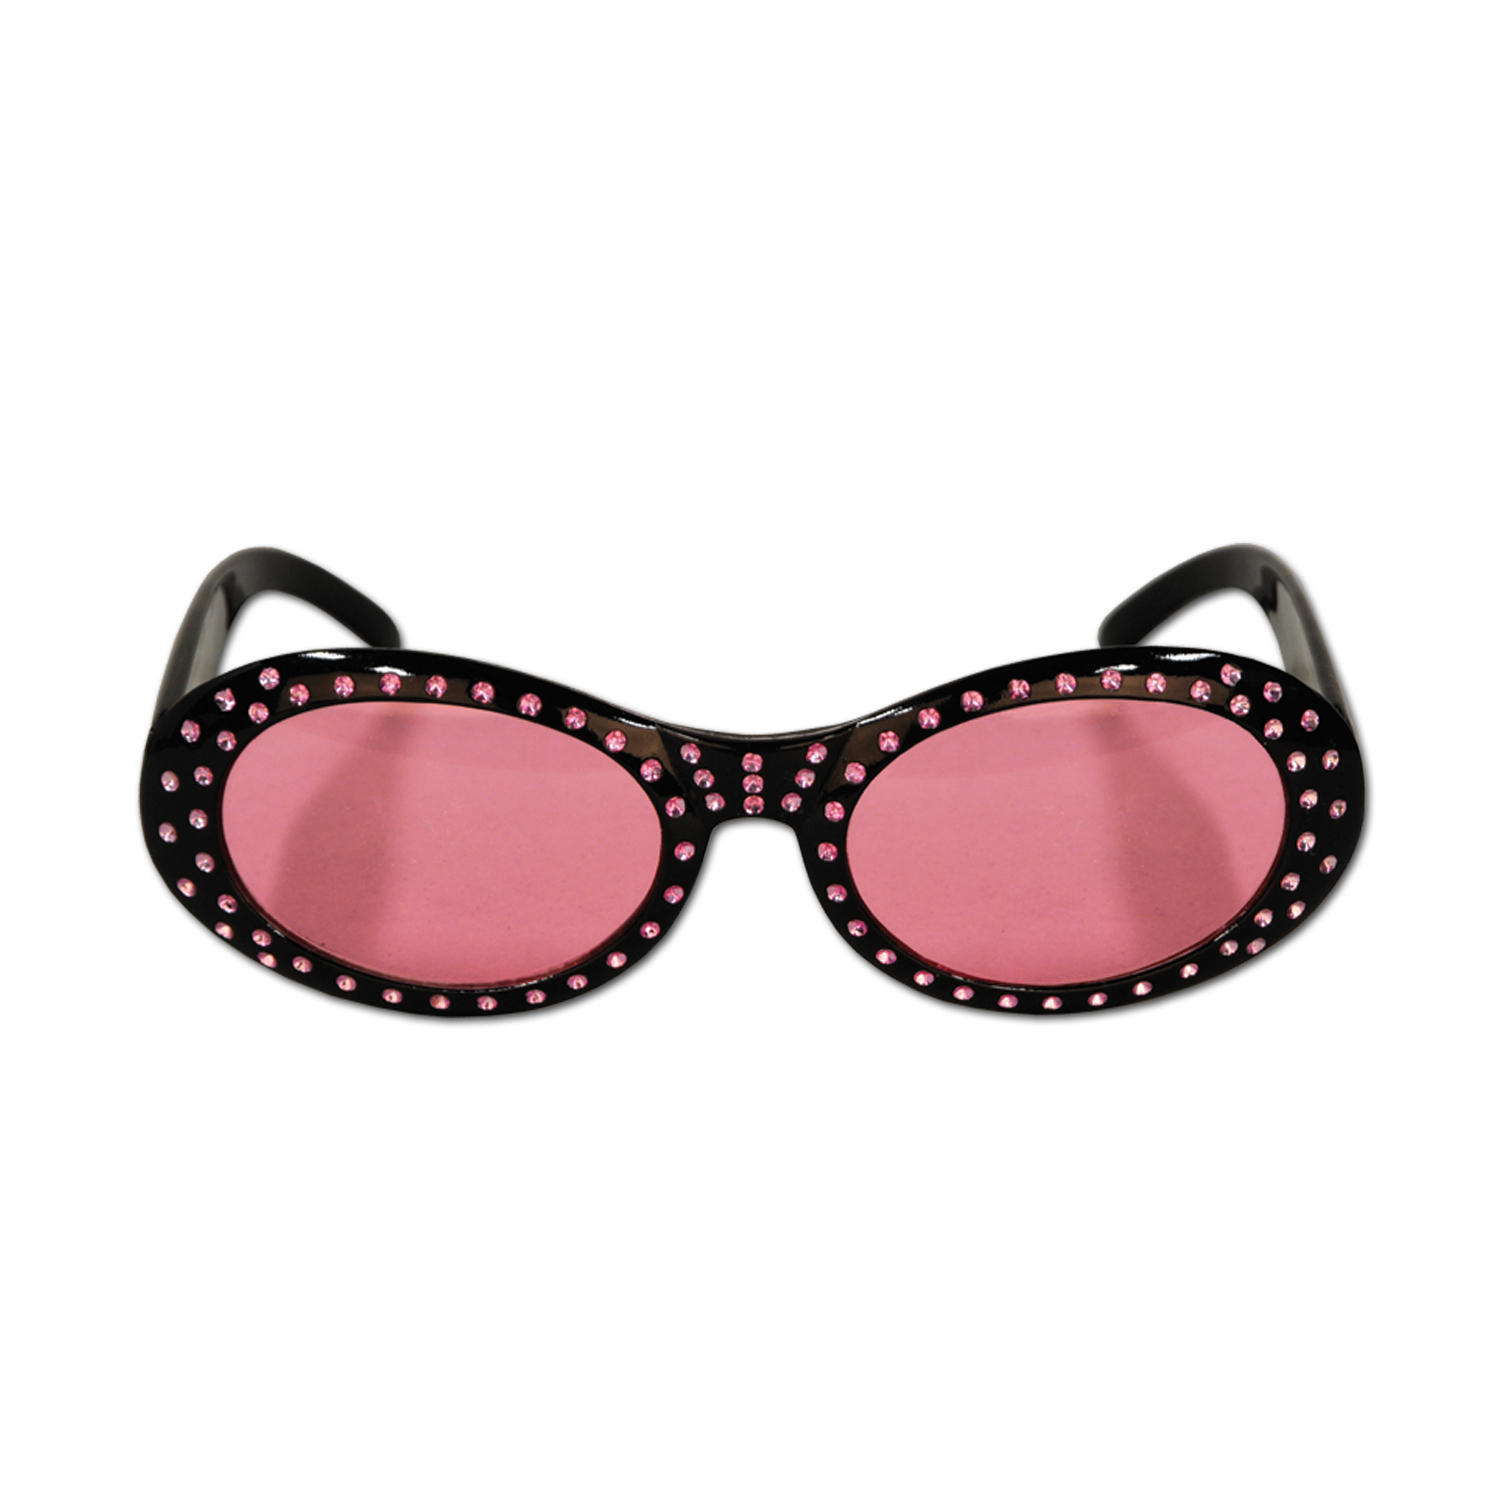 Jeweled Diva Fanci-Frames (Pack of 6) Jeweled, diva, fanci-frames, party, glasses, costume, accessory, 50s, Halloween, pack